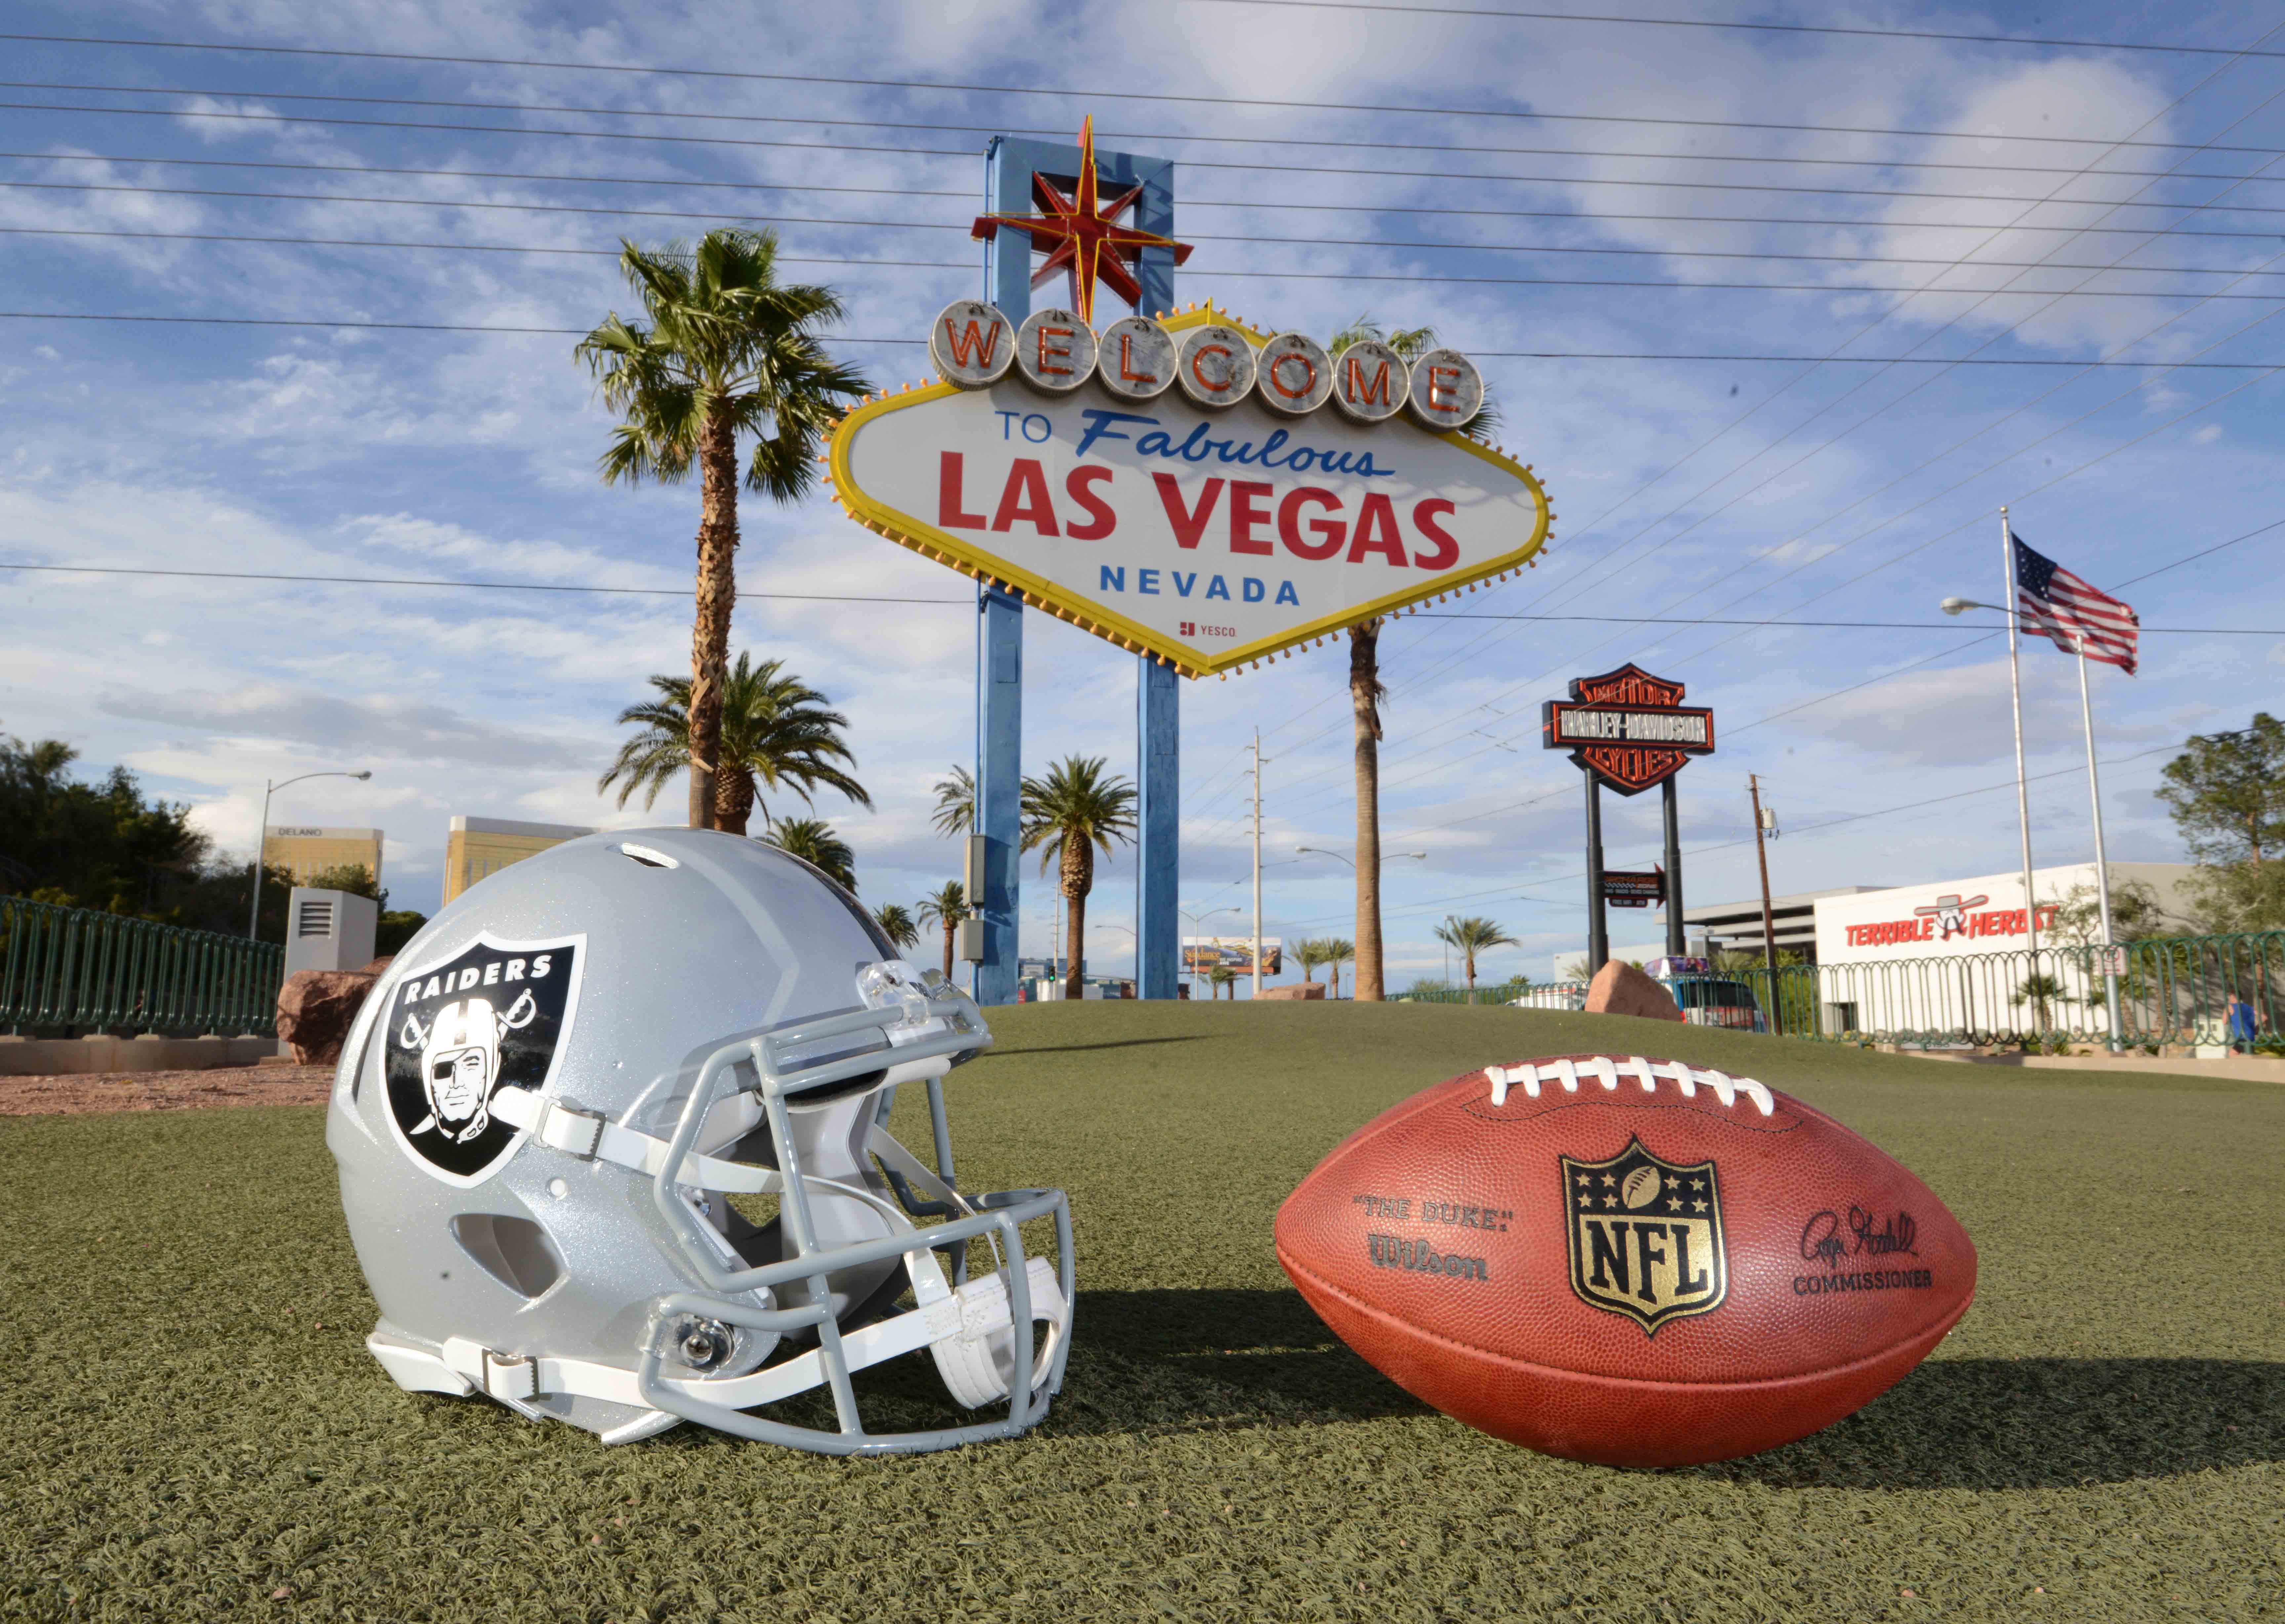 9973604-nfl-oakland-raiders-las-vegas-relocation-1